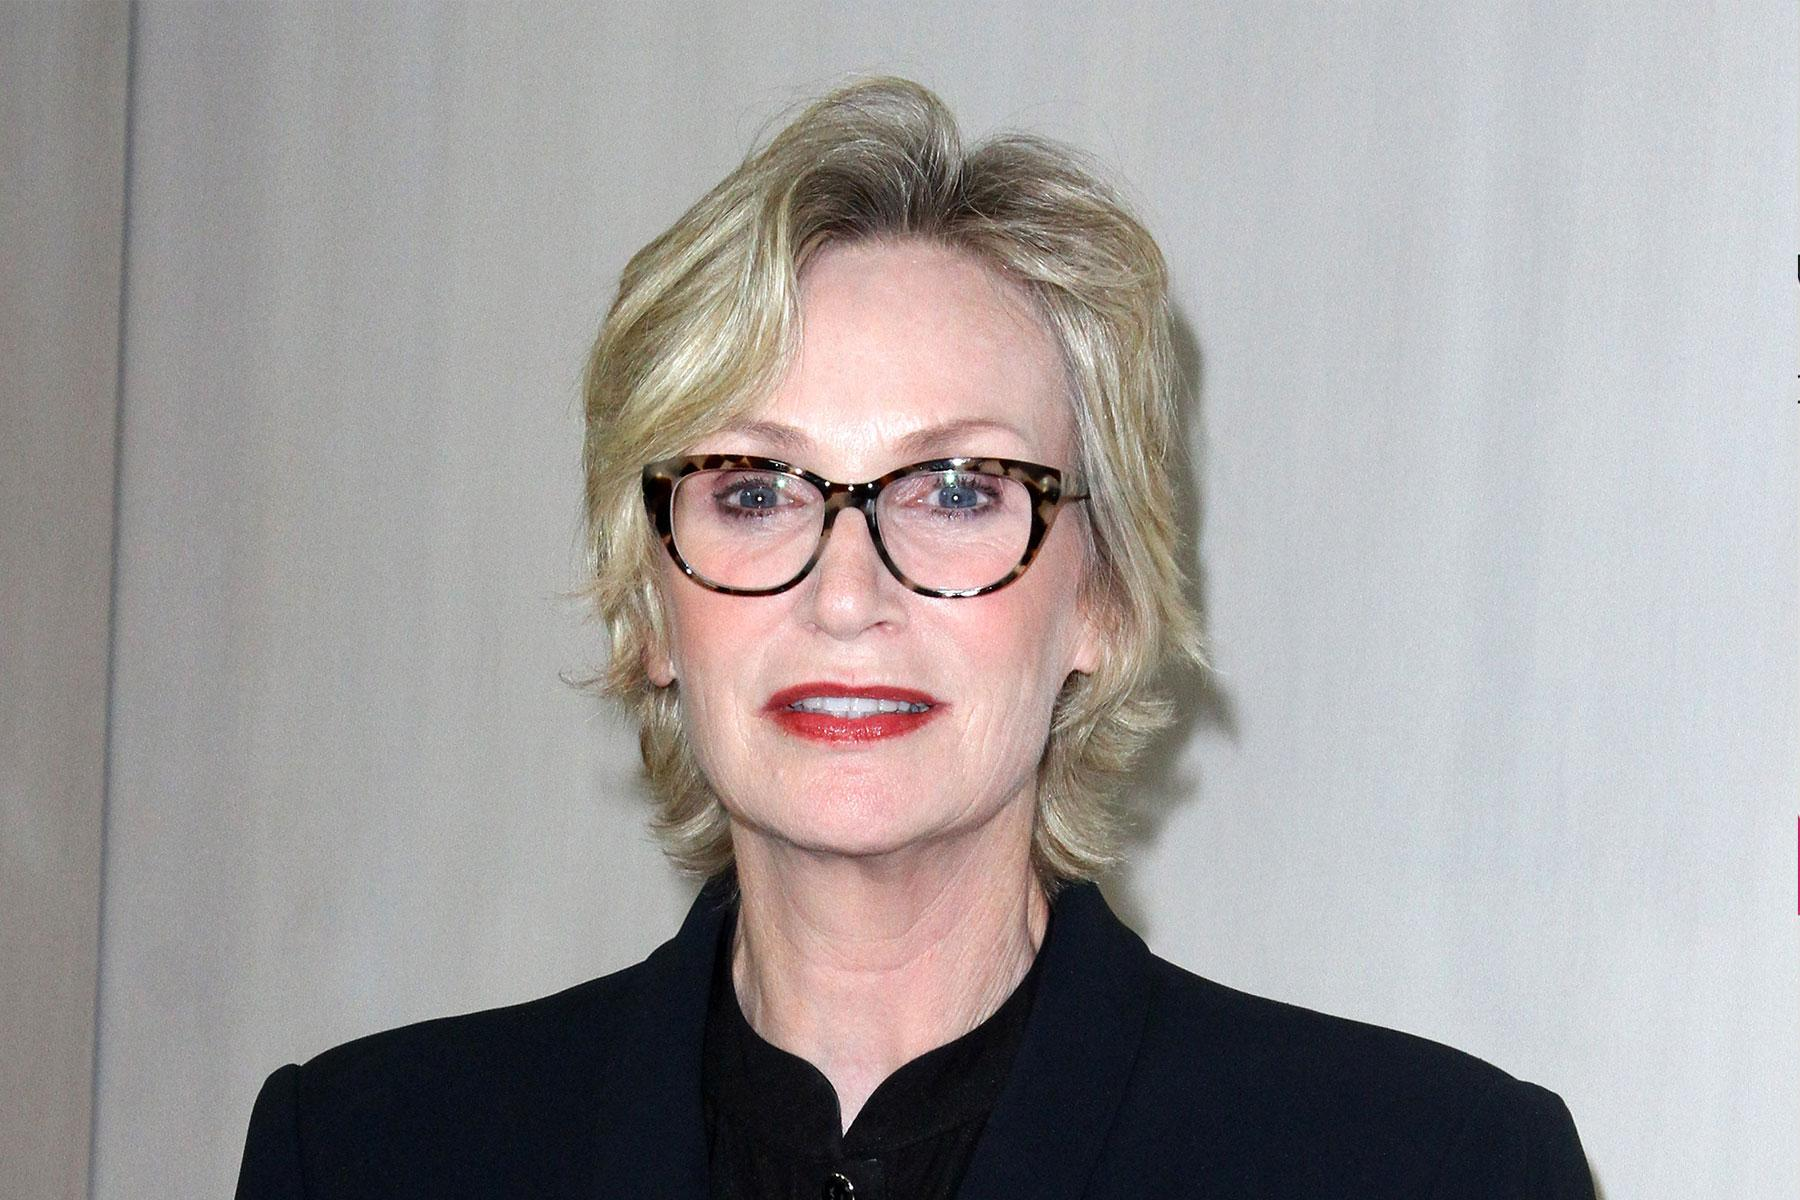 Jane Lynch American Actress, Voice Actress, Author, Singer and Comedian